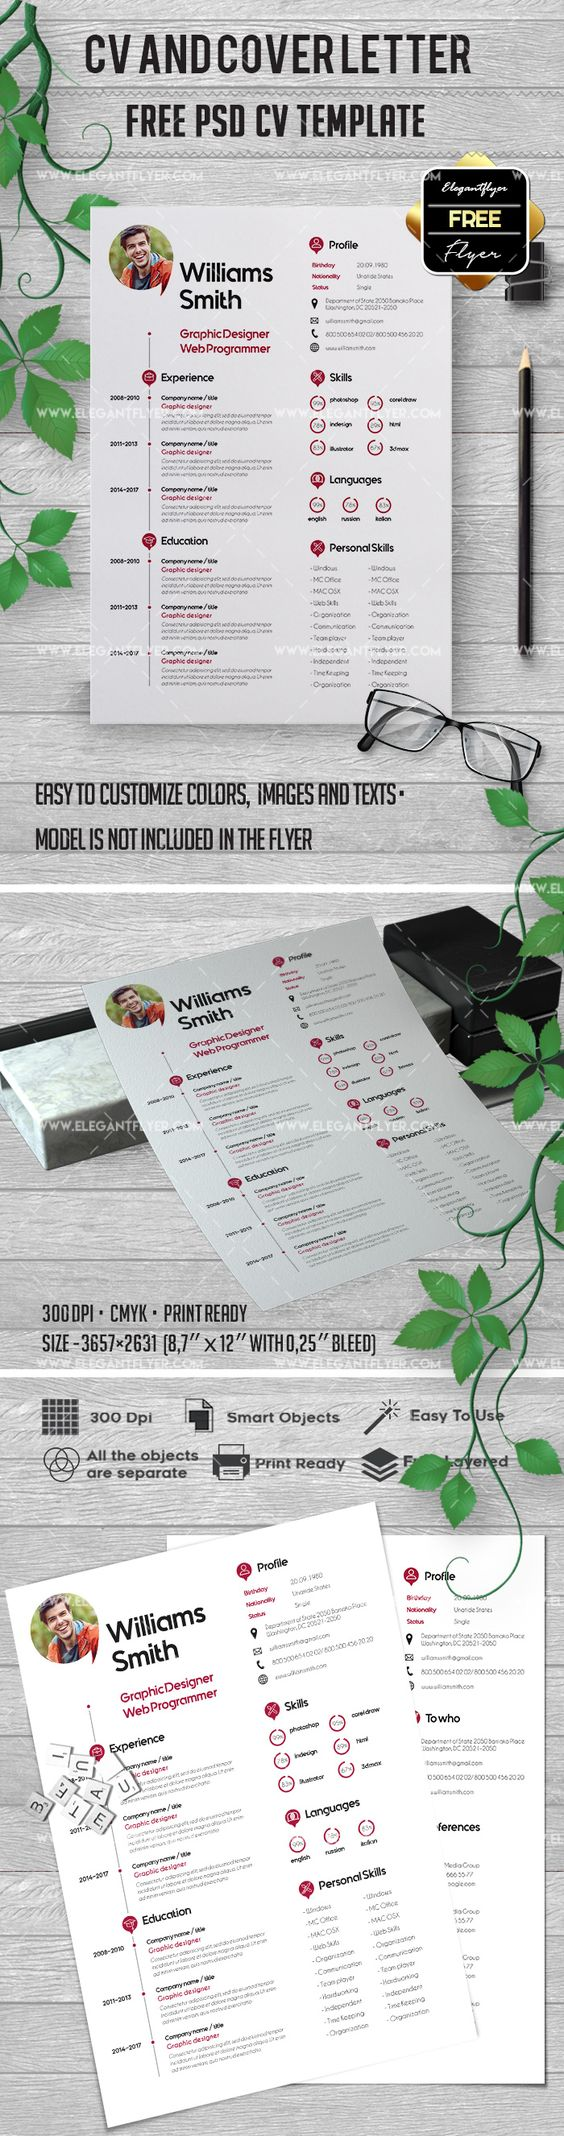 free resume templates microsoft word 2015%0A    Best Free Resume Templates Images On Pinterest Slipcovers   a    f  a    be  c  fc     f ac Free Resume Templates